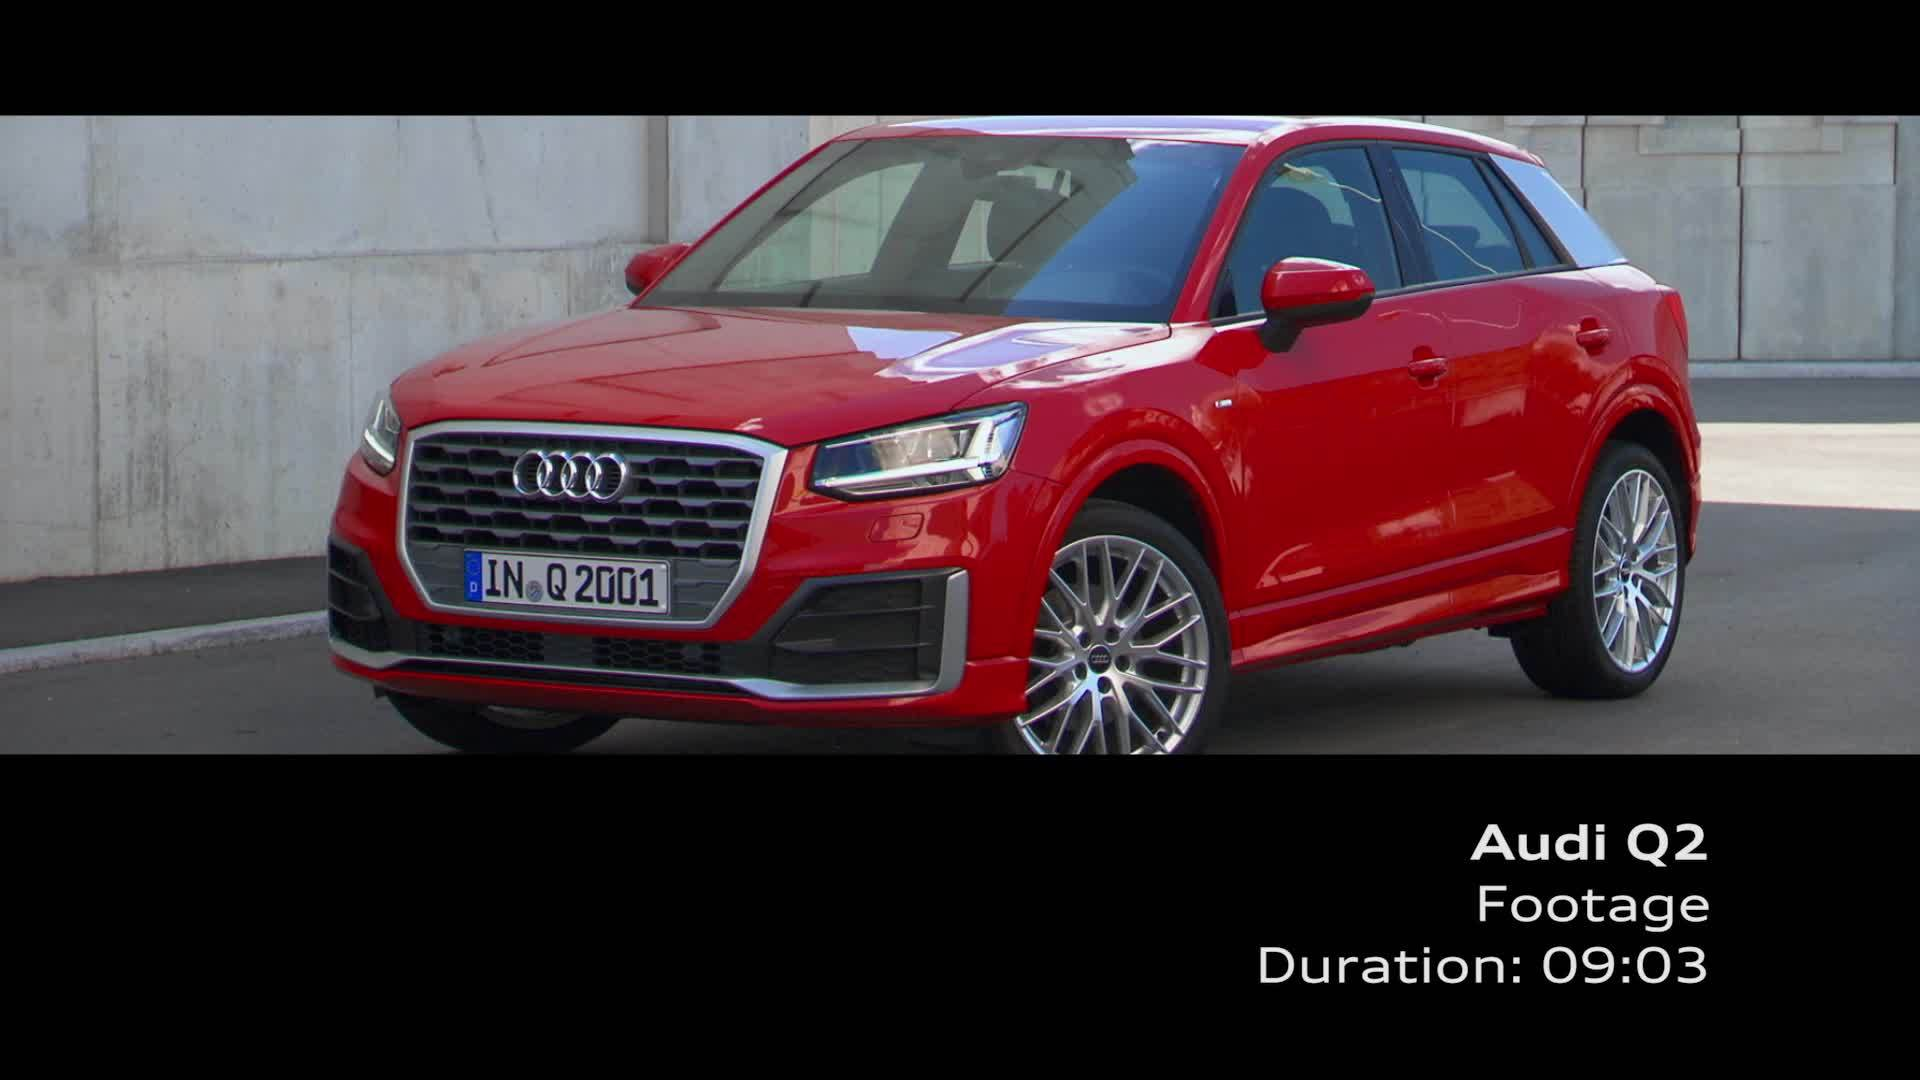 Audi Q2 - Footage on Location, Tangorot